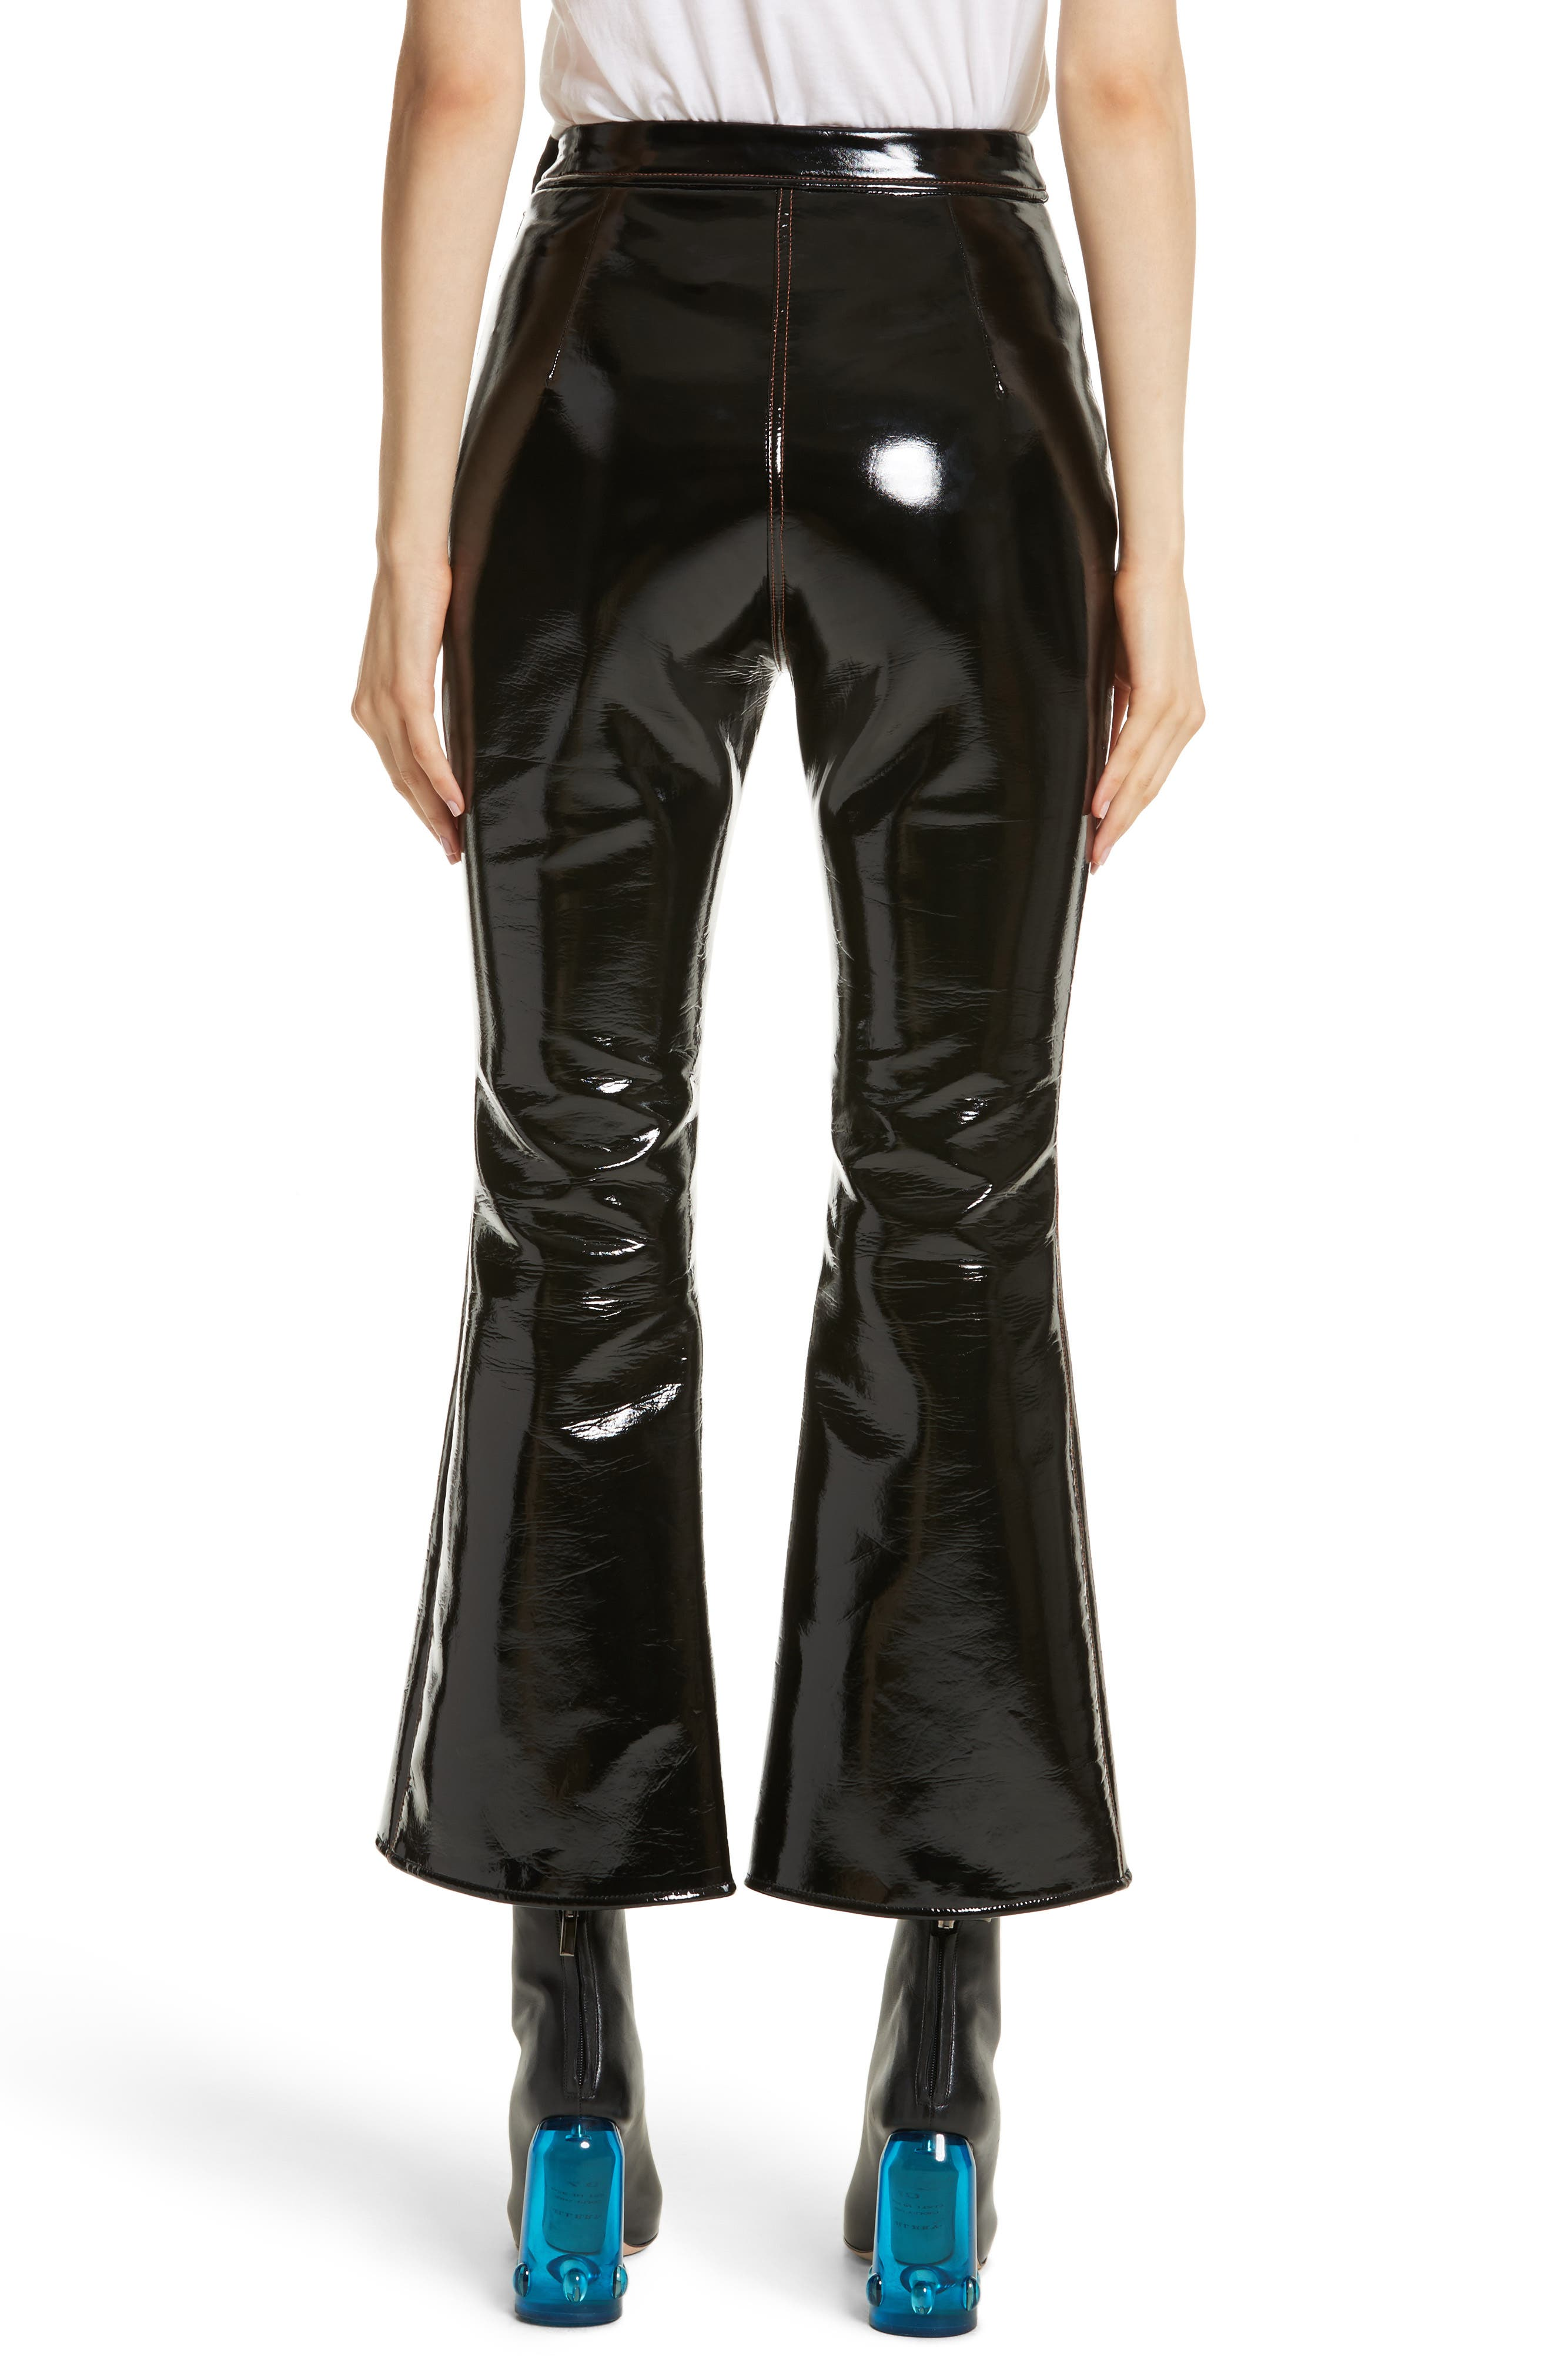 Outlaw Topstitched Crop Flare PVC Pants,                             Alternate thumbnail 2, color,                             001